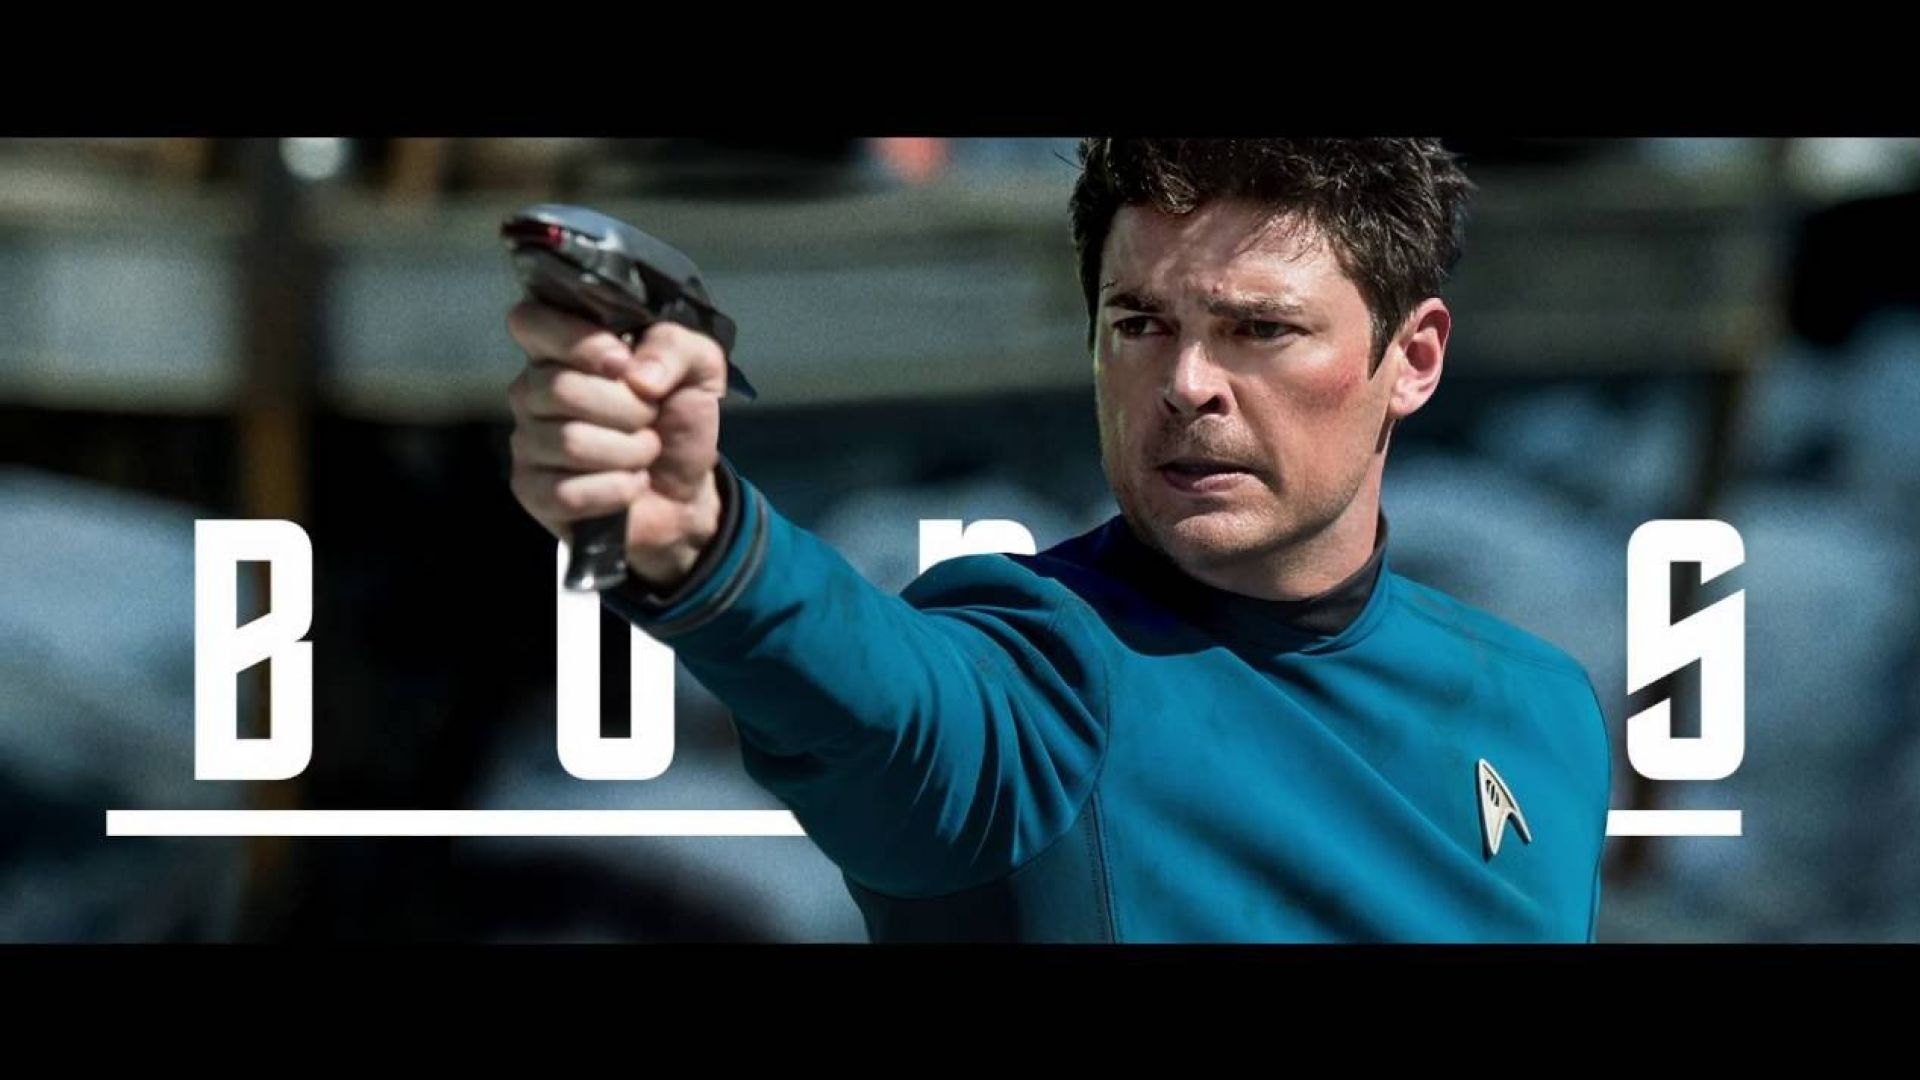 Star Trek Beyond Bones Paramount Pictures